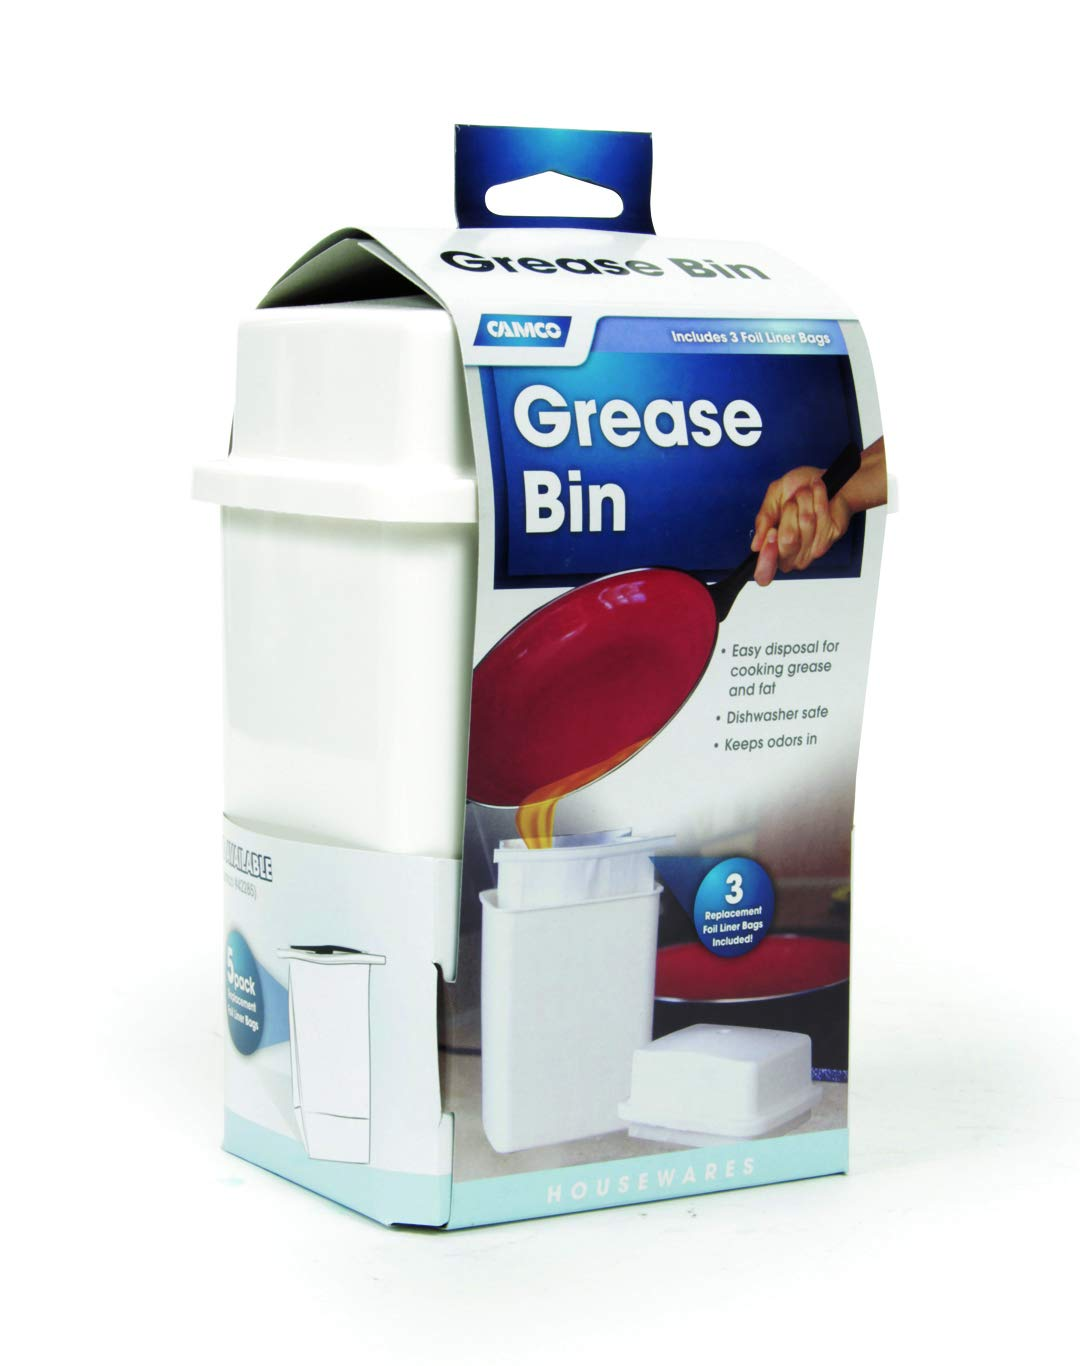 Camco Storage Easily Contain and Dispose Used Cooking Grease, Foil Lined Bags Seal in Odor, Prevent Drain Clogs (42281)